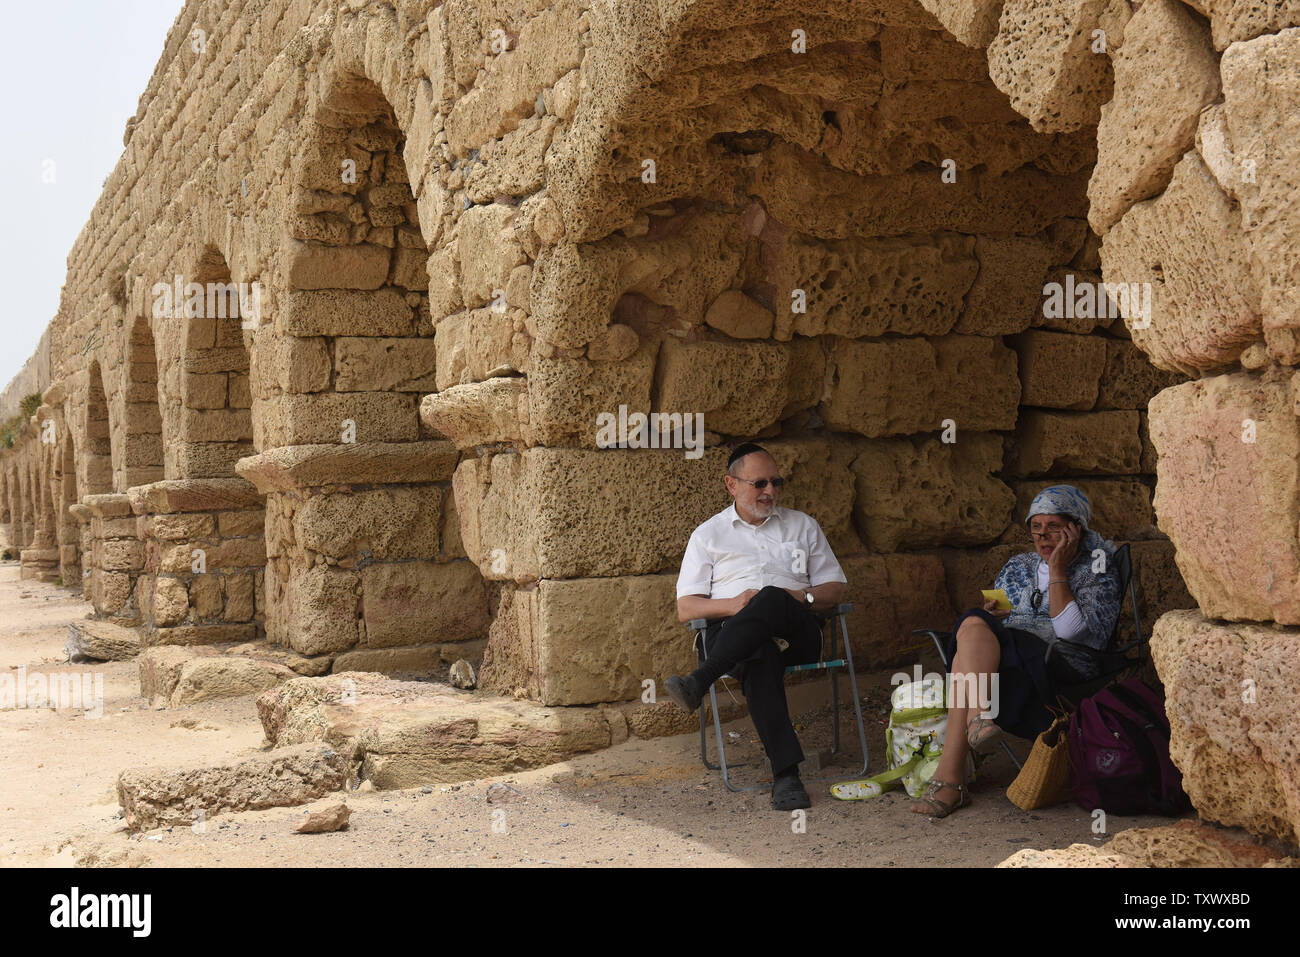 Israelis sit in the shade in the squeduct in Caesarea, Israel, April 26, 2017. The Edmond de Rothschild Foundations is investing approximately $275,000 to expose and restore Caesarea's hidden treasures.  Photo by Debbie Hill/UPI - Stock Image